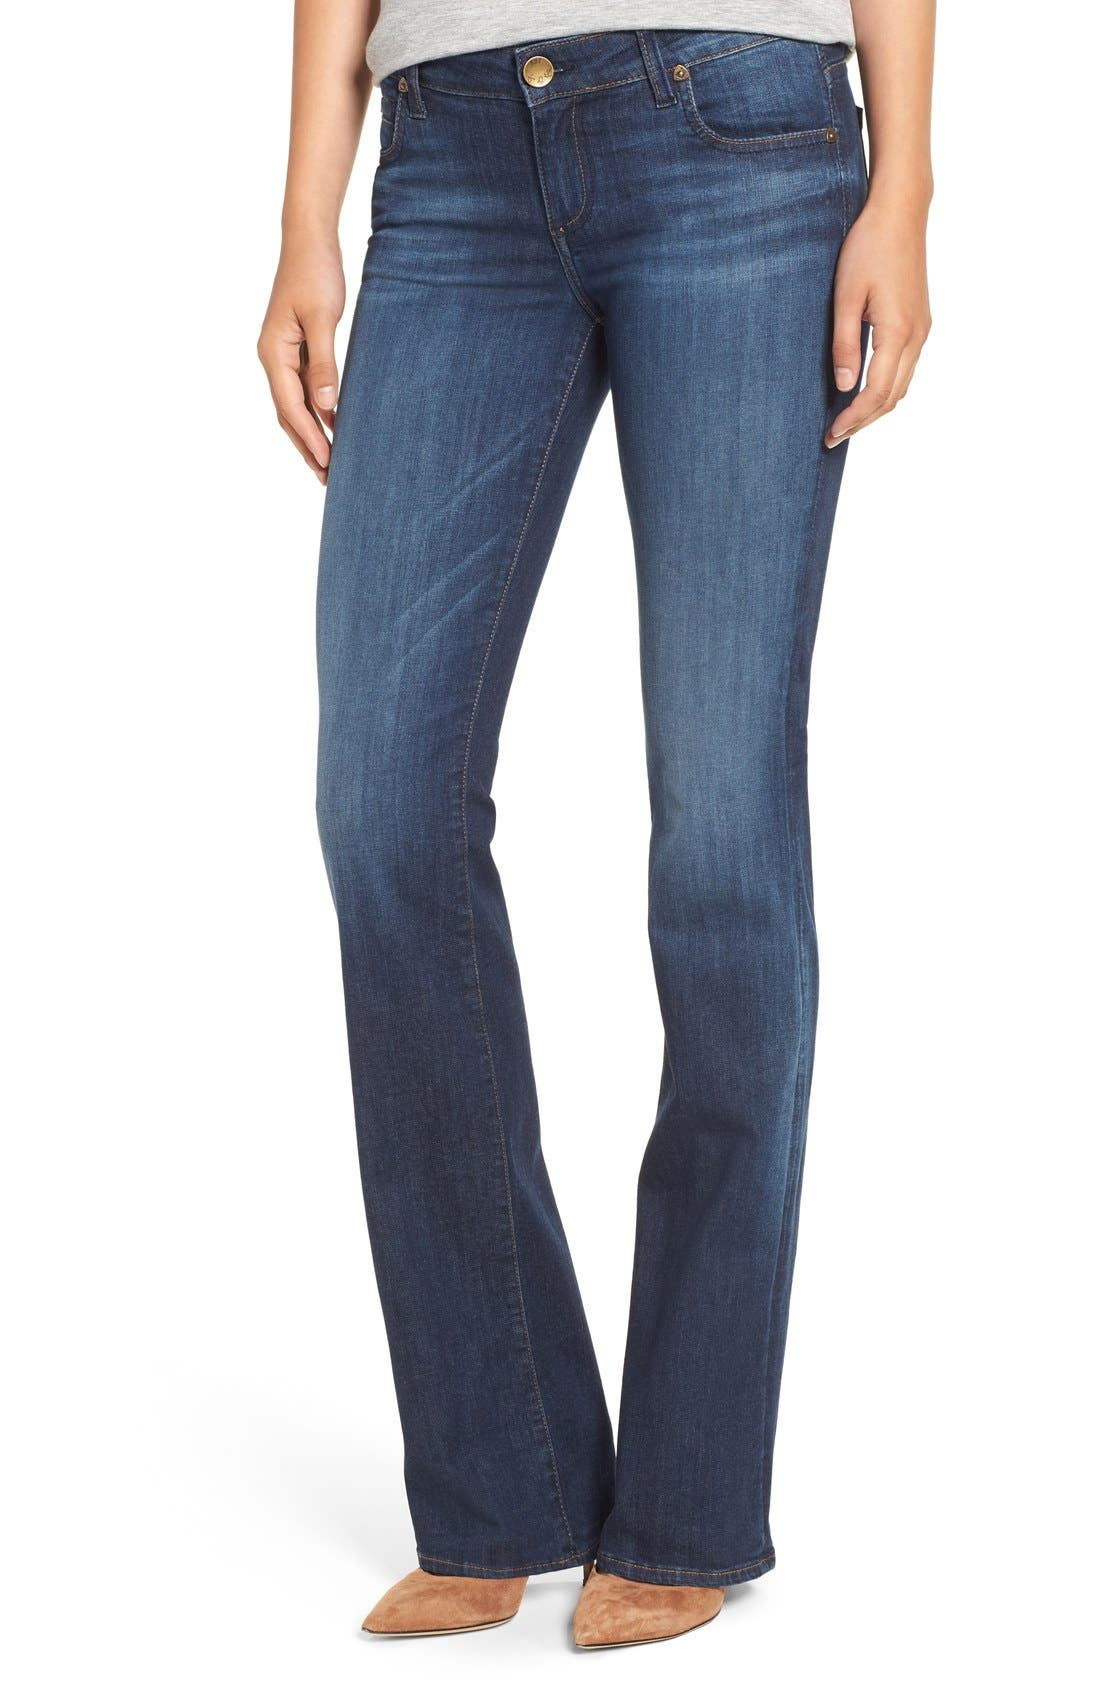 Alternate Image 1 Selected - KUT from the Kloth 'Natalie' Stretch Bootcut Jeans (Adaptive) (Regular & Petite)